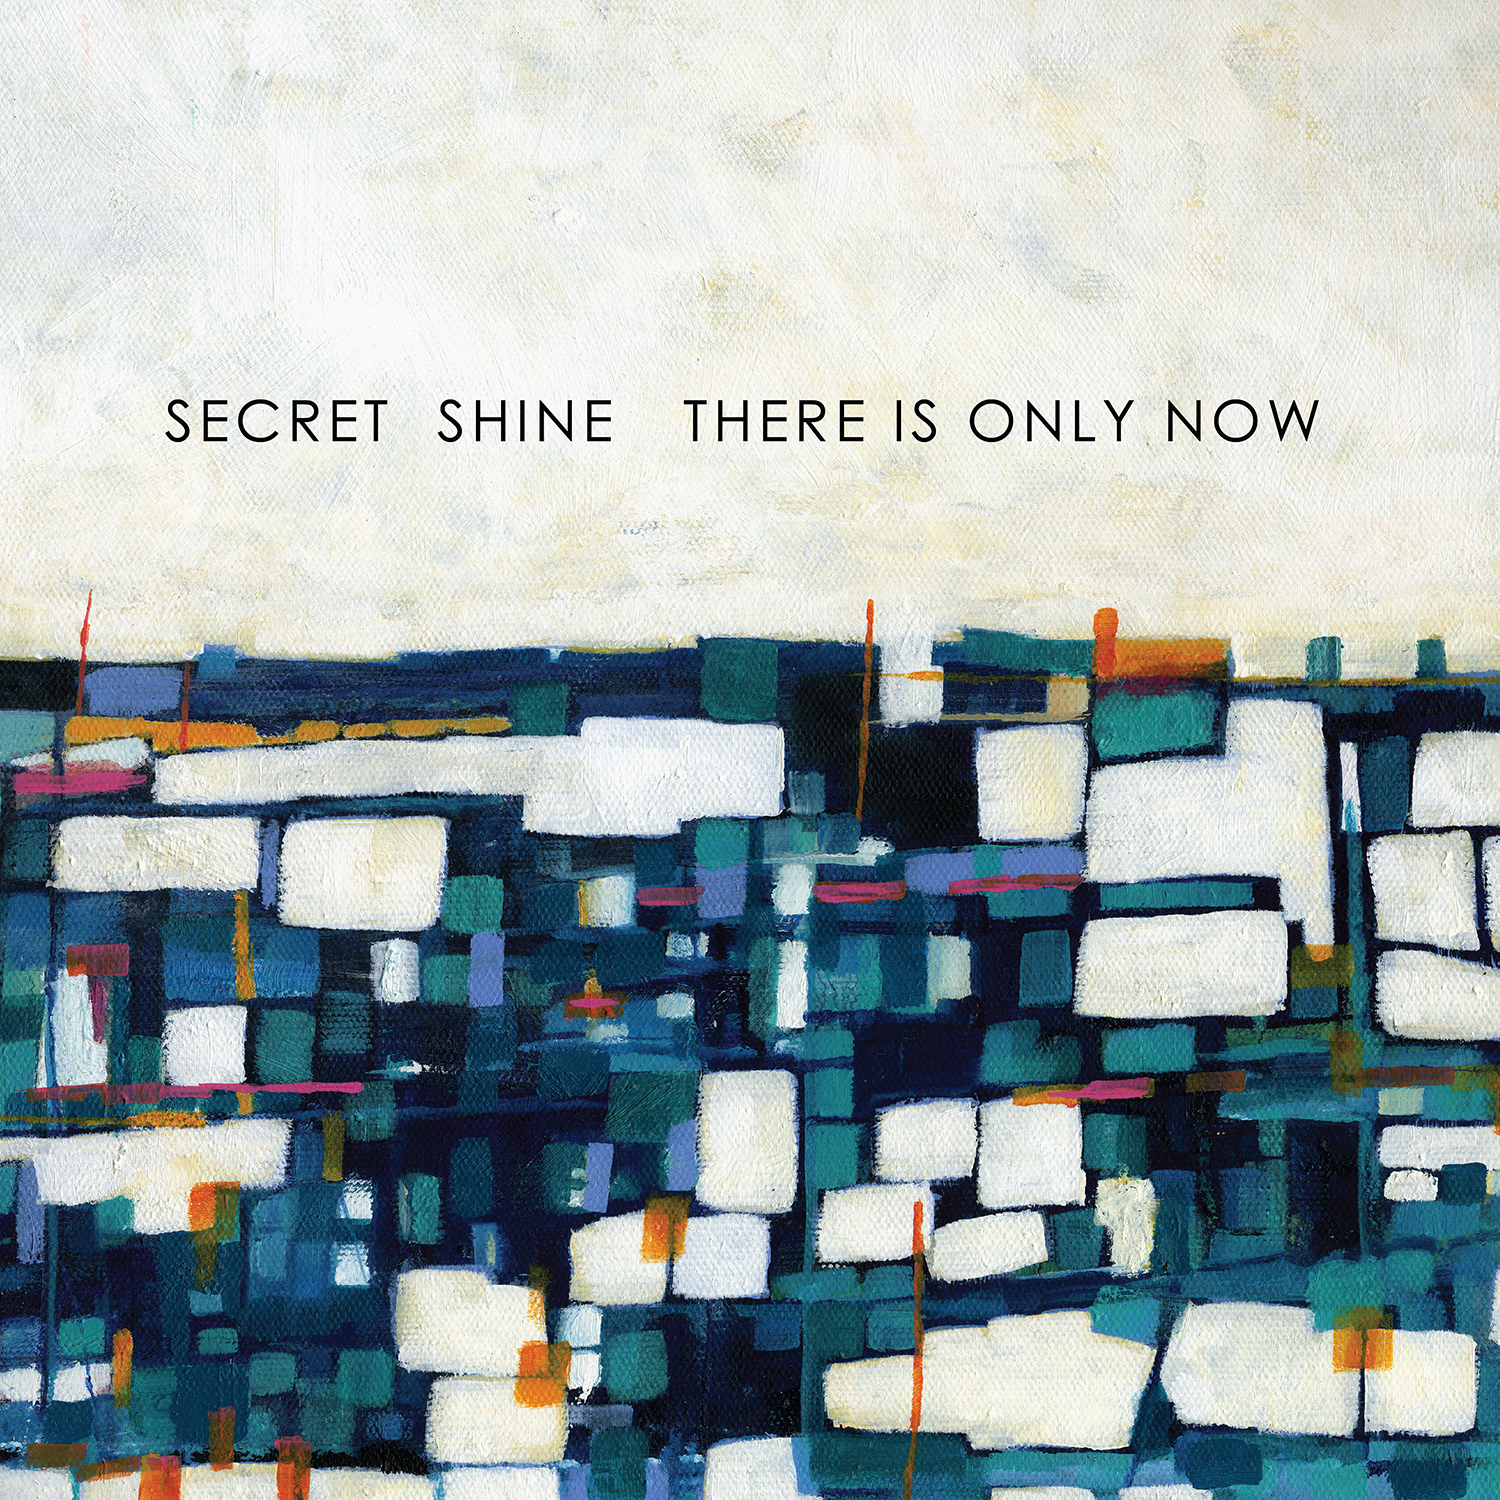 Secret Shine There Is Only Now